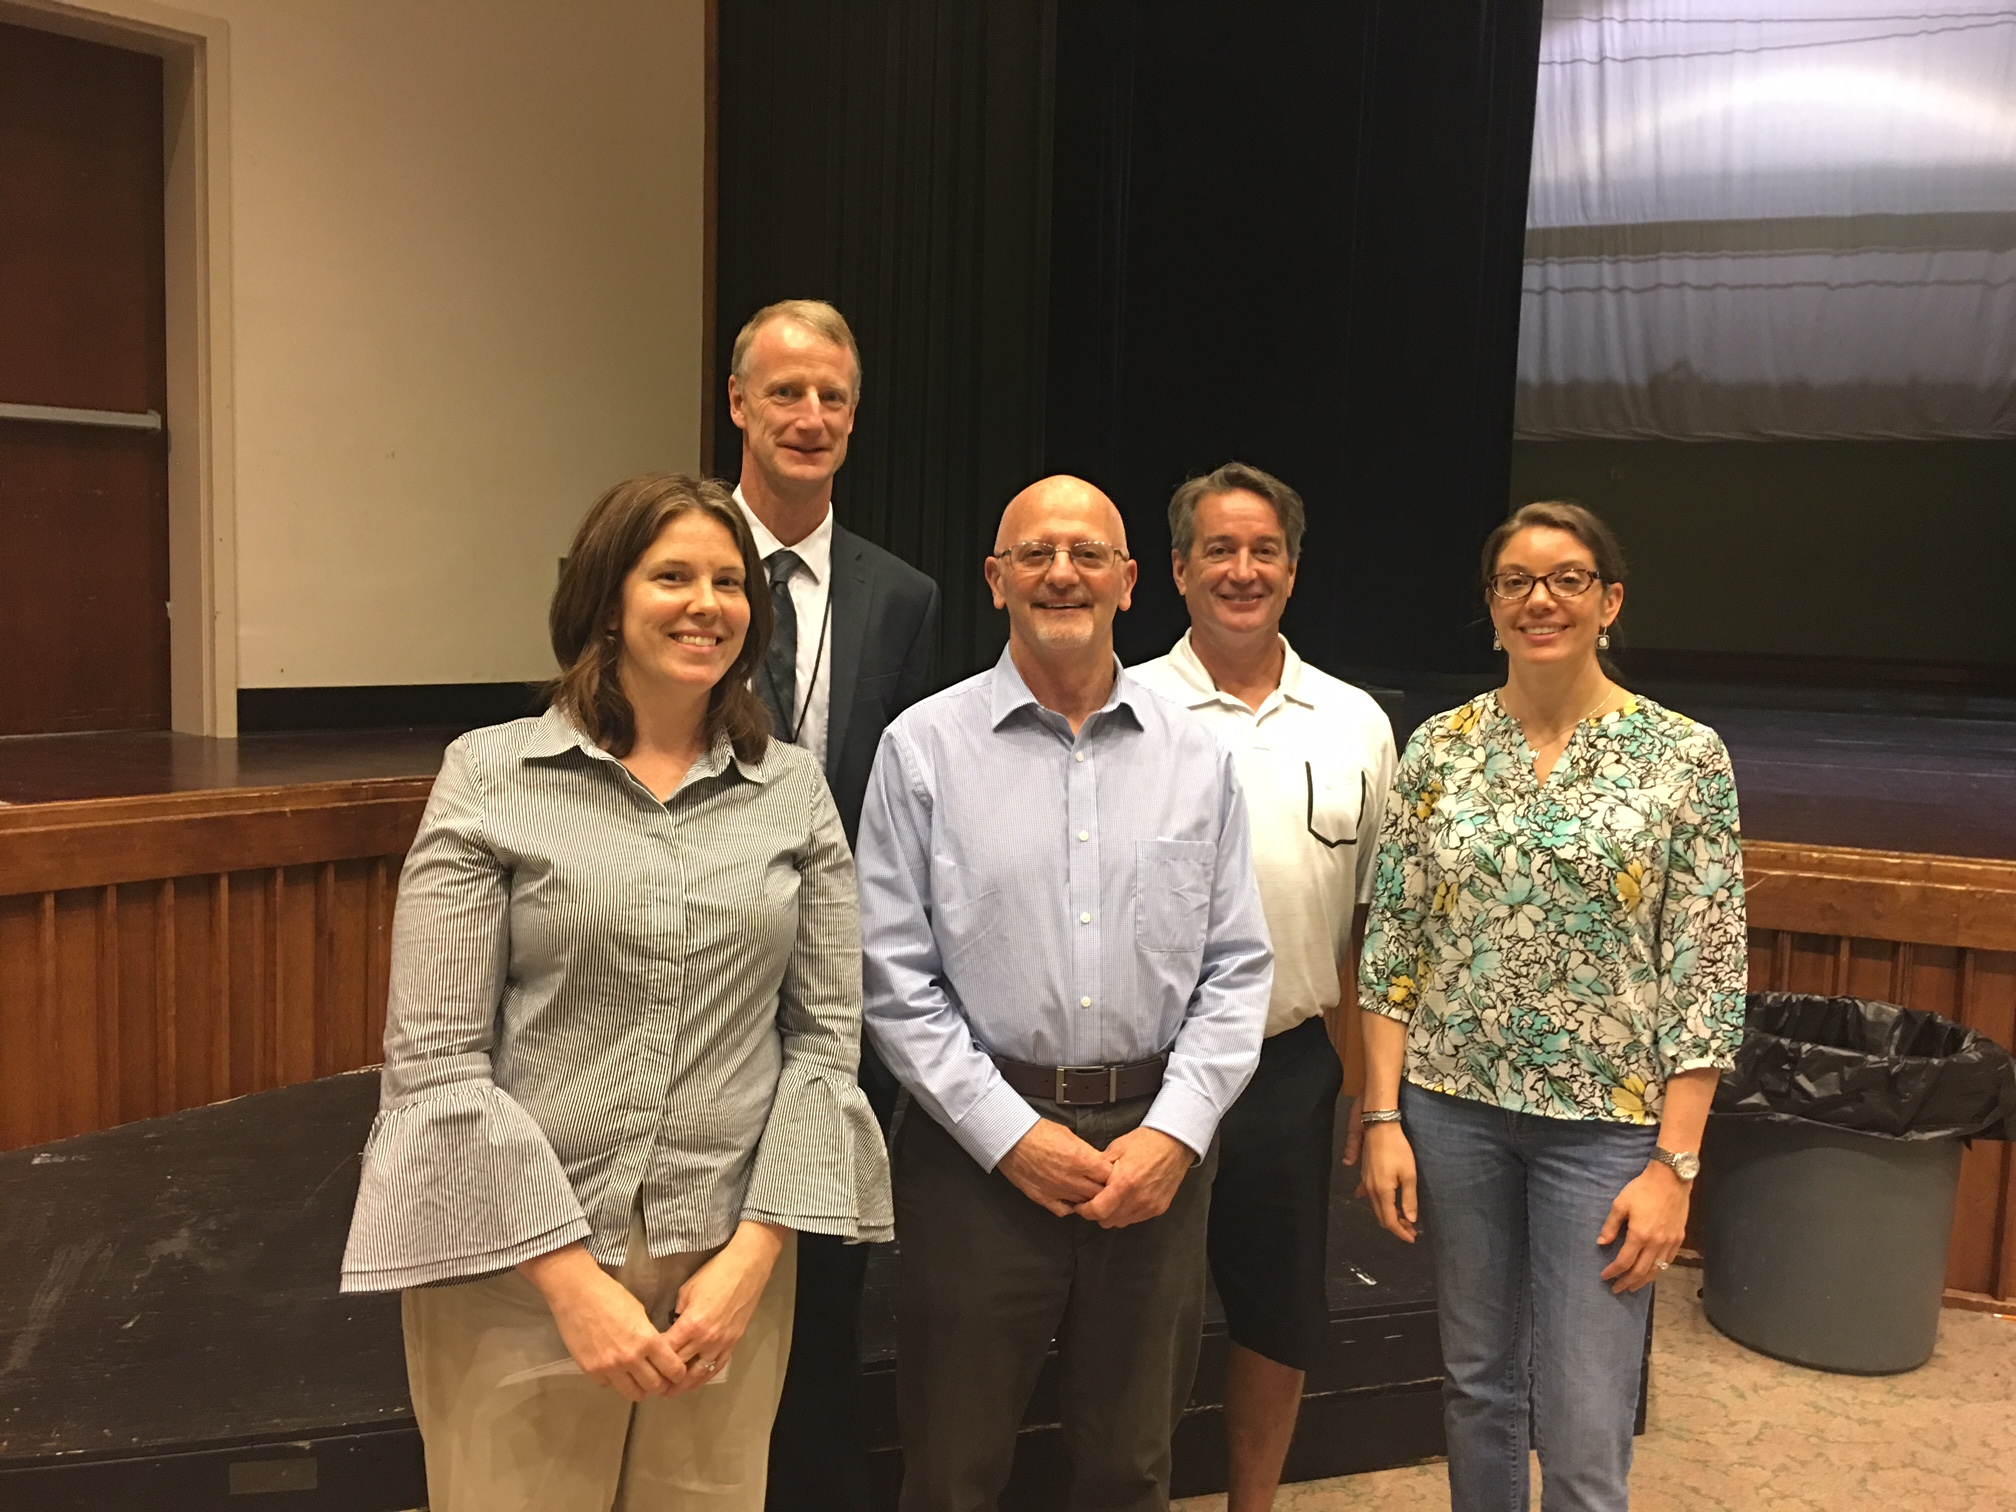 Left to right: Amy Porier, Peter Driscoll, Arthur LeClair, with SEED board members Pat Duffy and Kelly Glennon